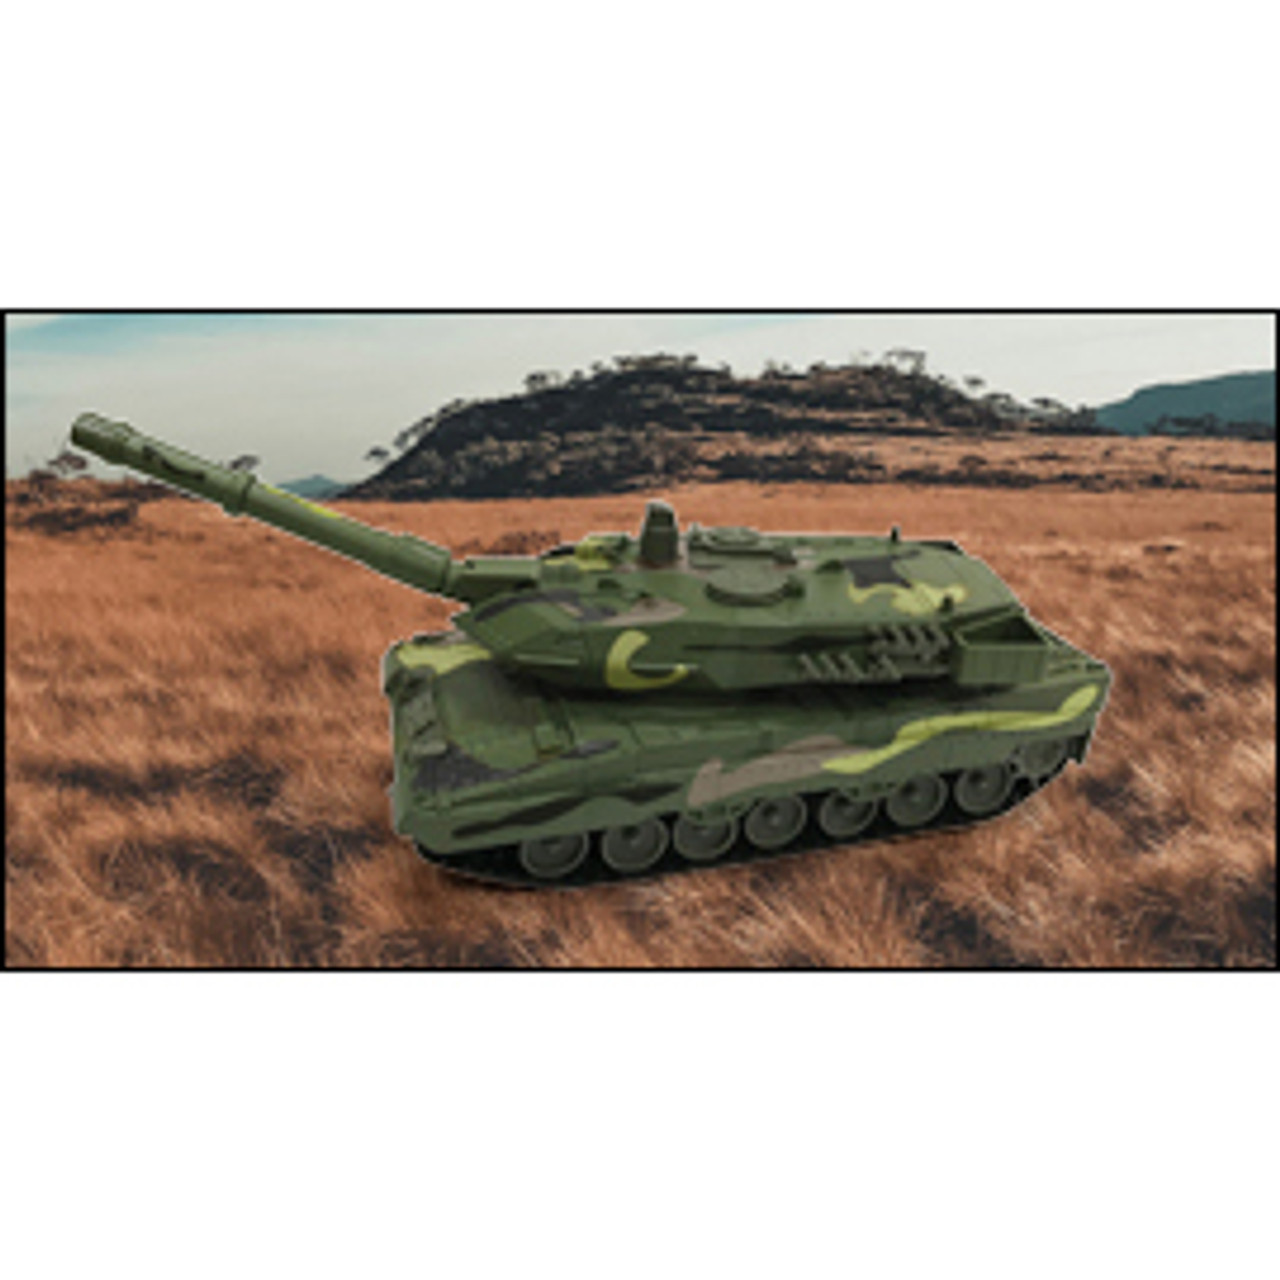 Diecast Military Collectibles   Military Diecast Models